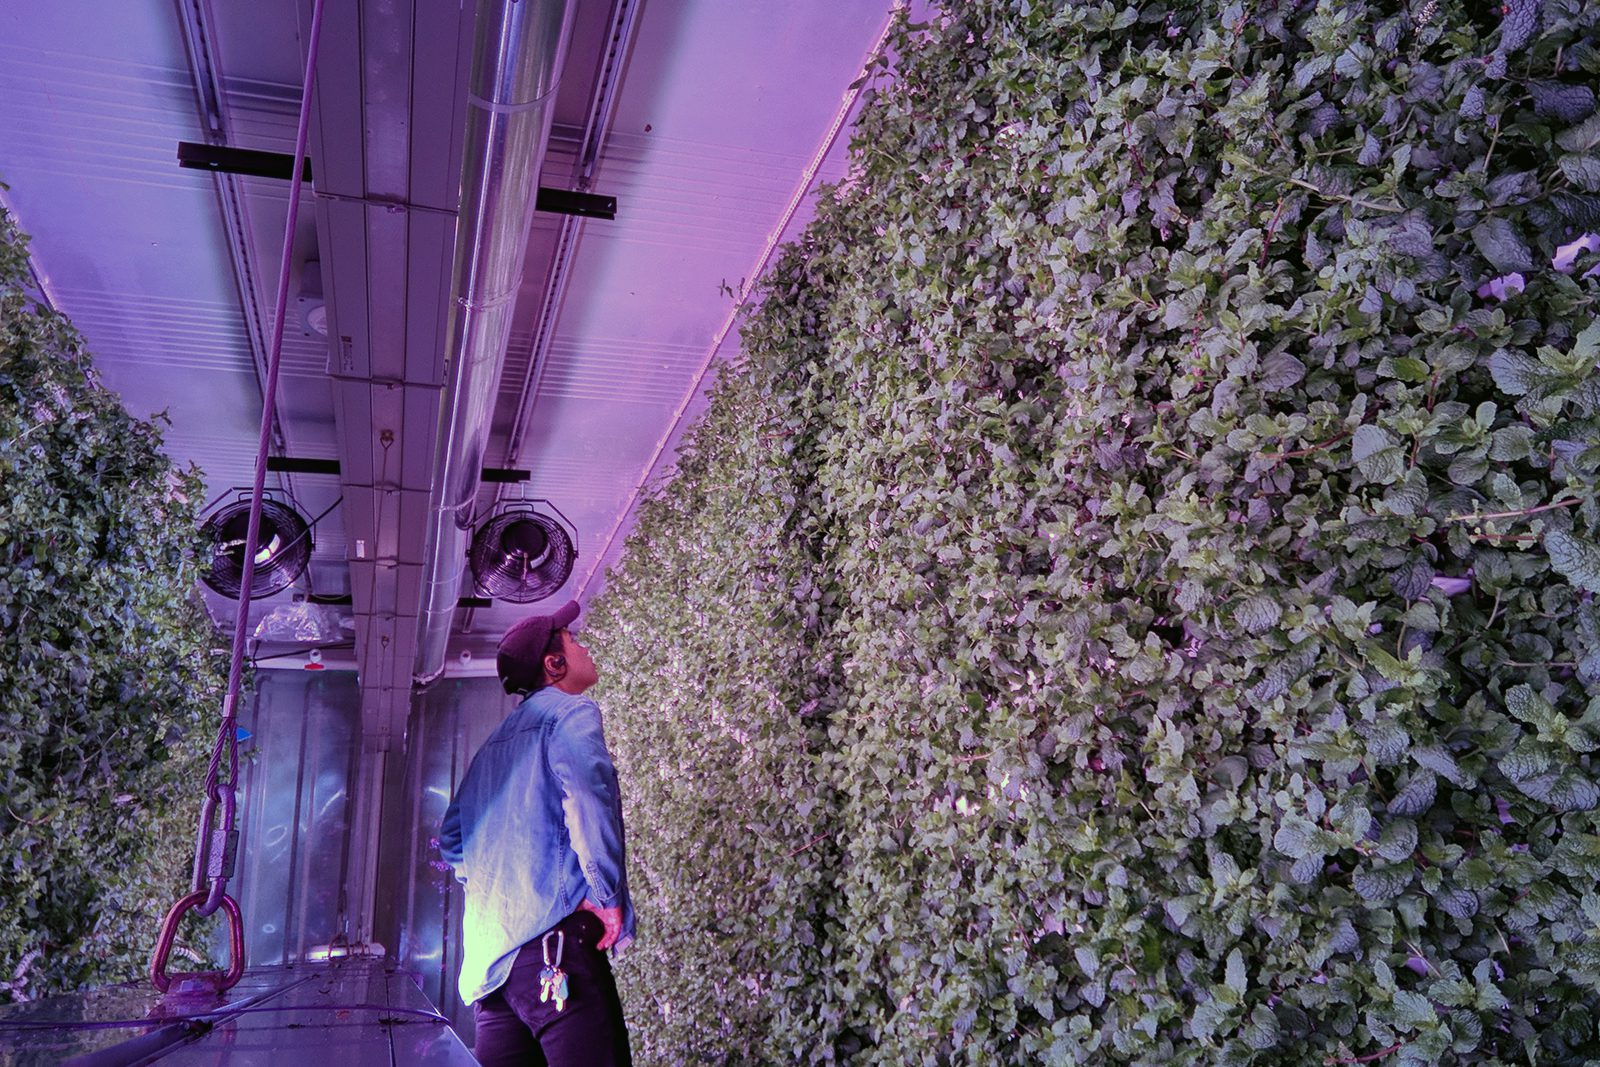 Micah Helle stands in front of plants growing on a wall in an indoor farming facility.